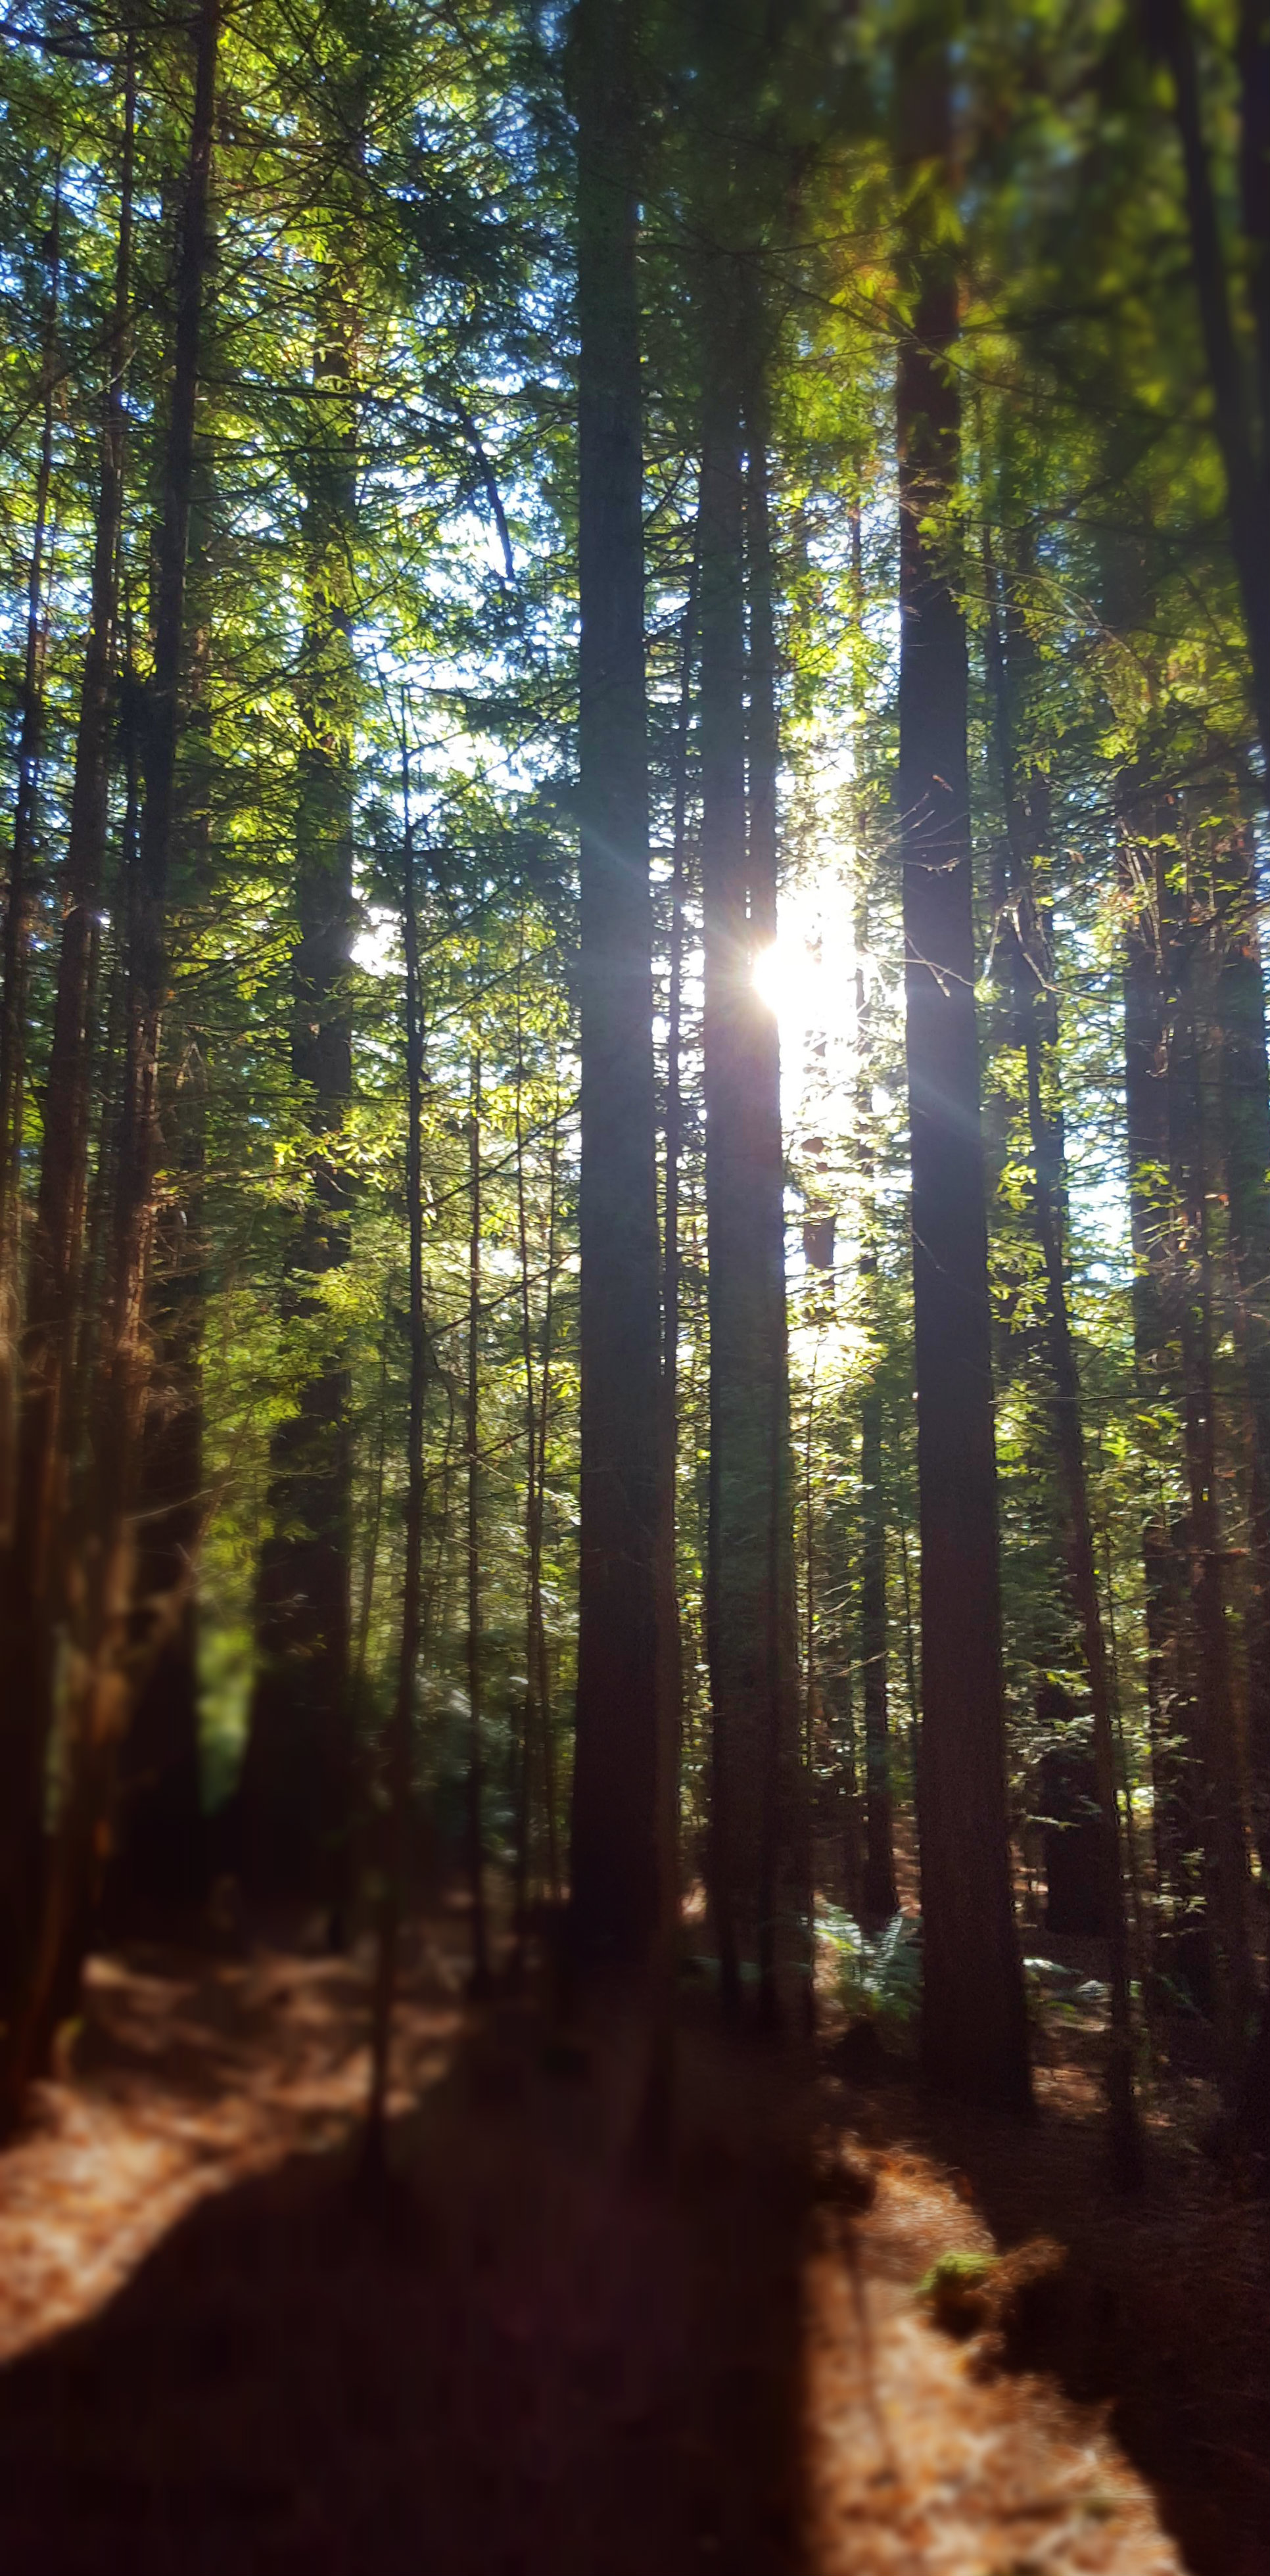 Redwood trees in forest, autumn sun shining through